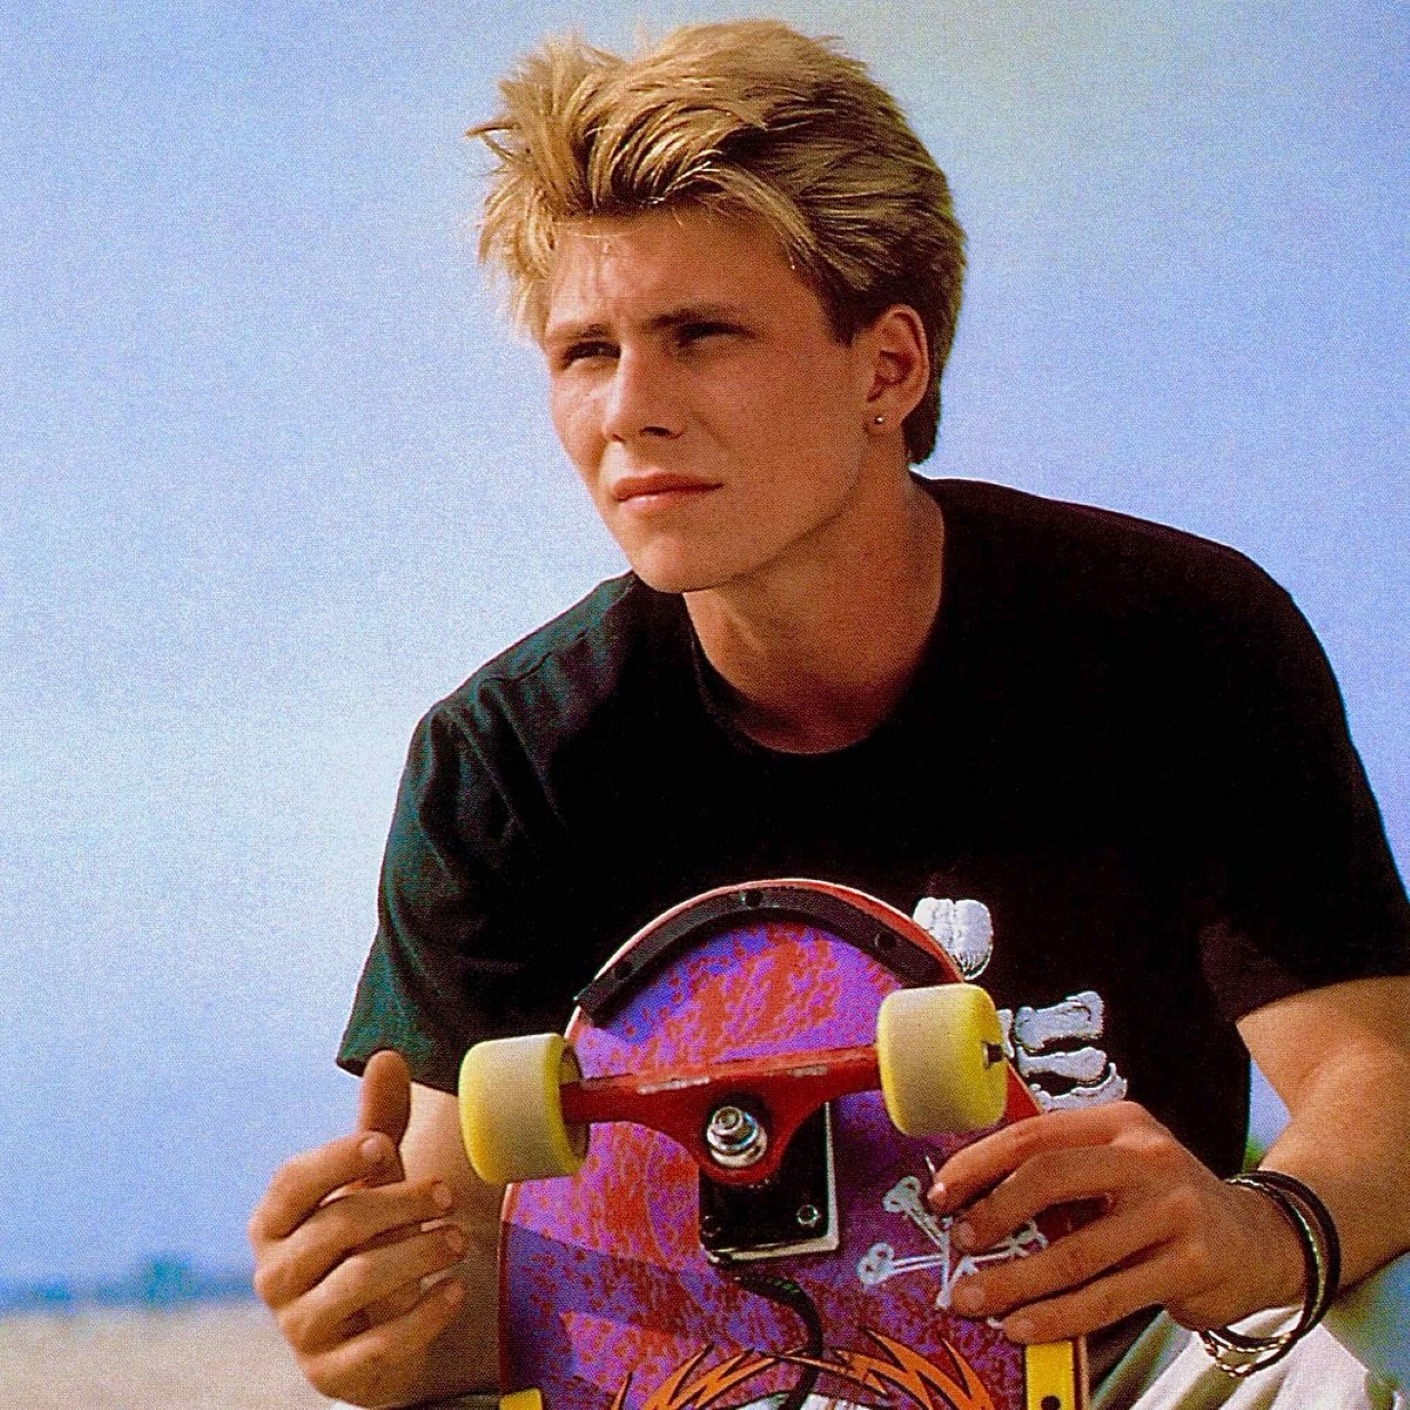 GVN Presents: They Called This a Movie - They Called This a Movie - Gleaming the Cube (1989)